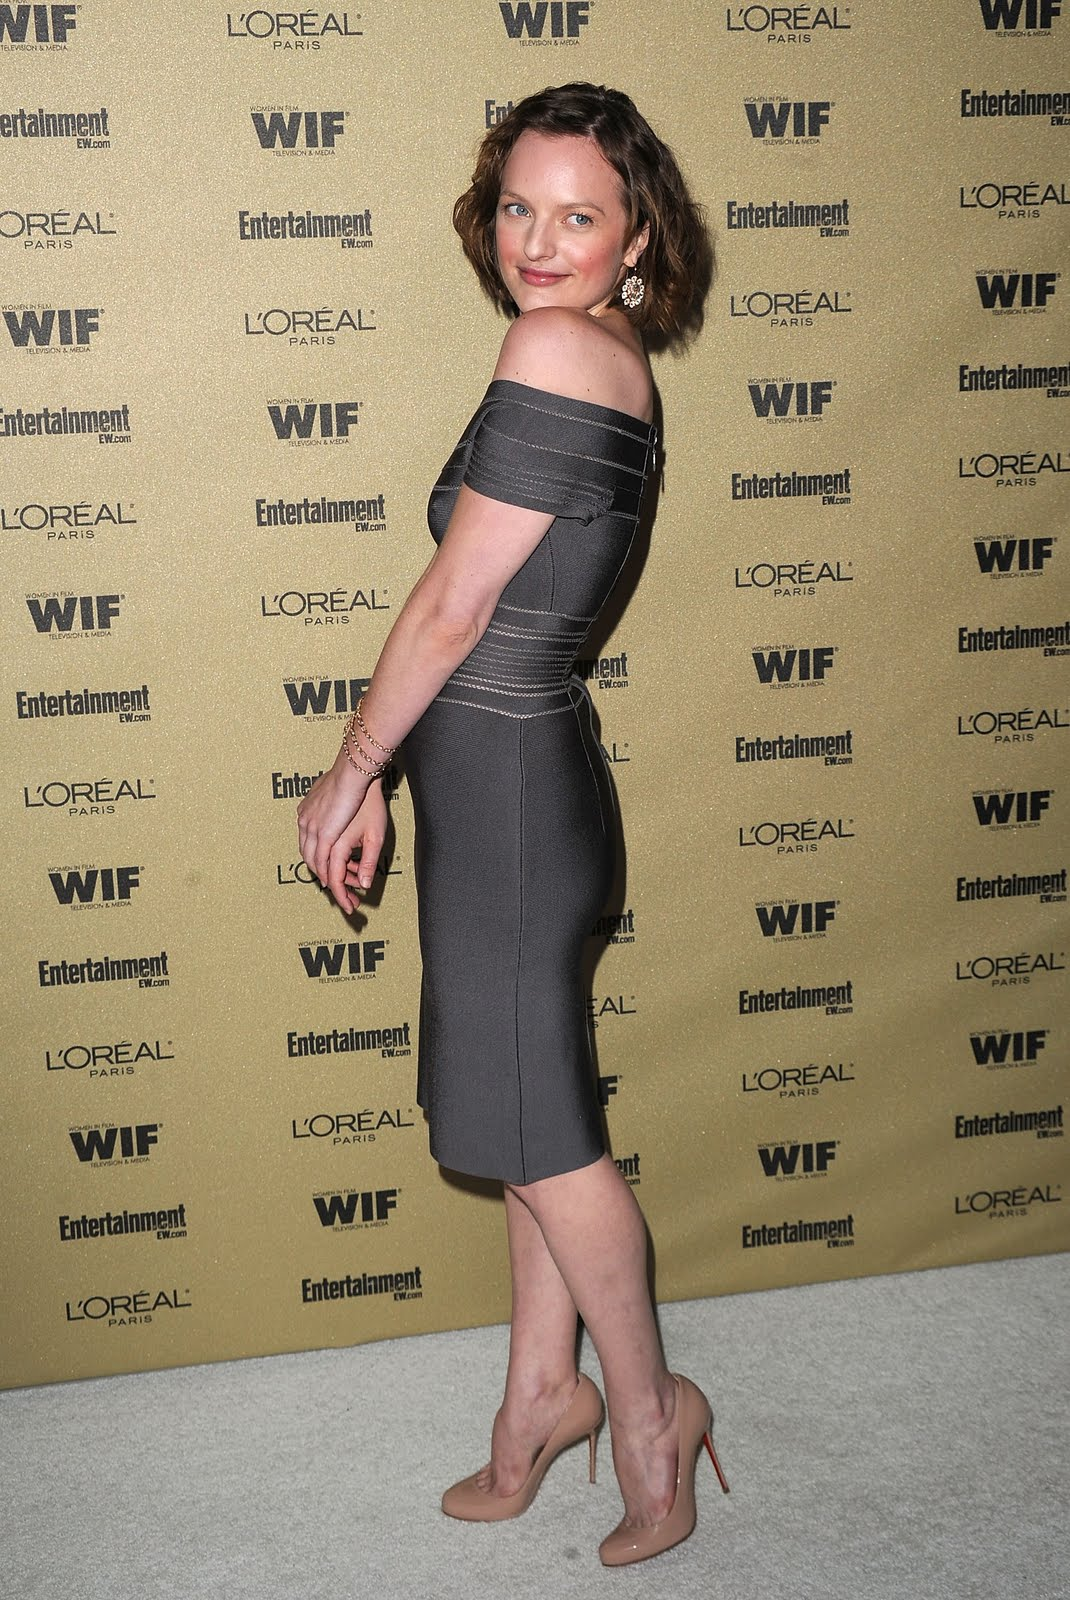 Elisabeth Moss Women In Film Pre Emmy Party 014 123 193lo This is what you get when you add together 5 nights of inadequate sleep, ...